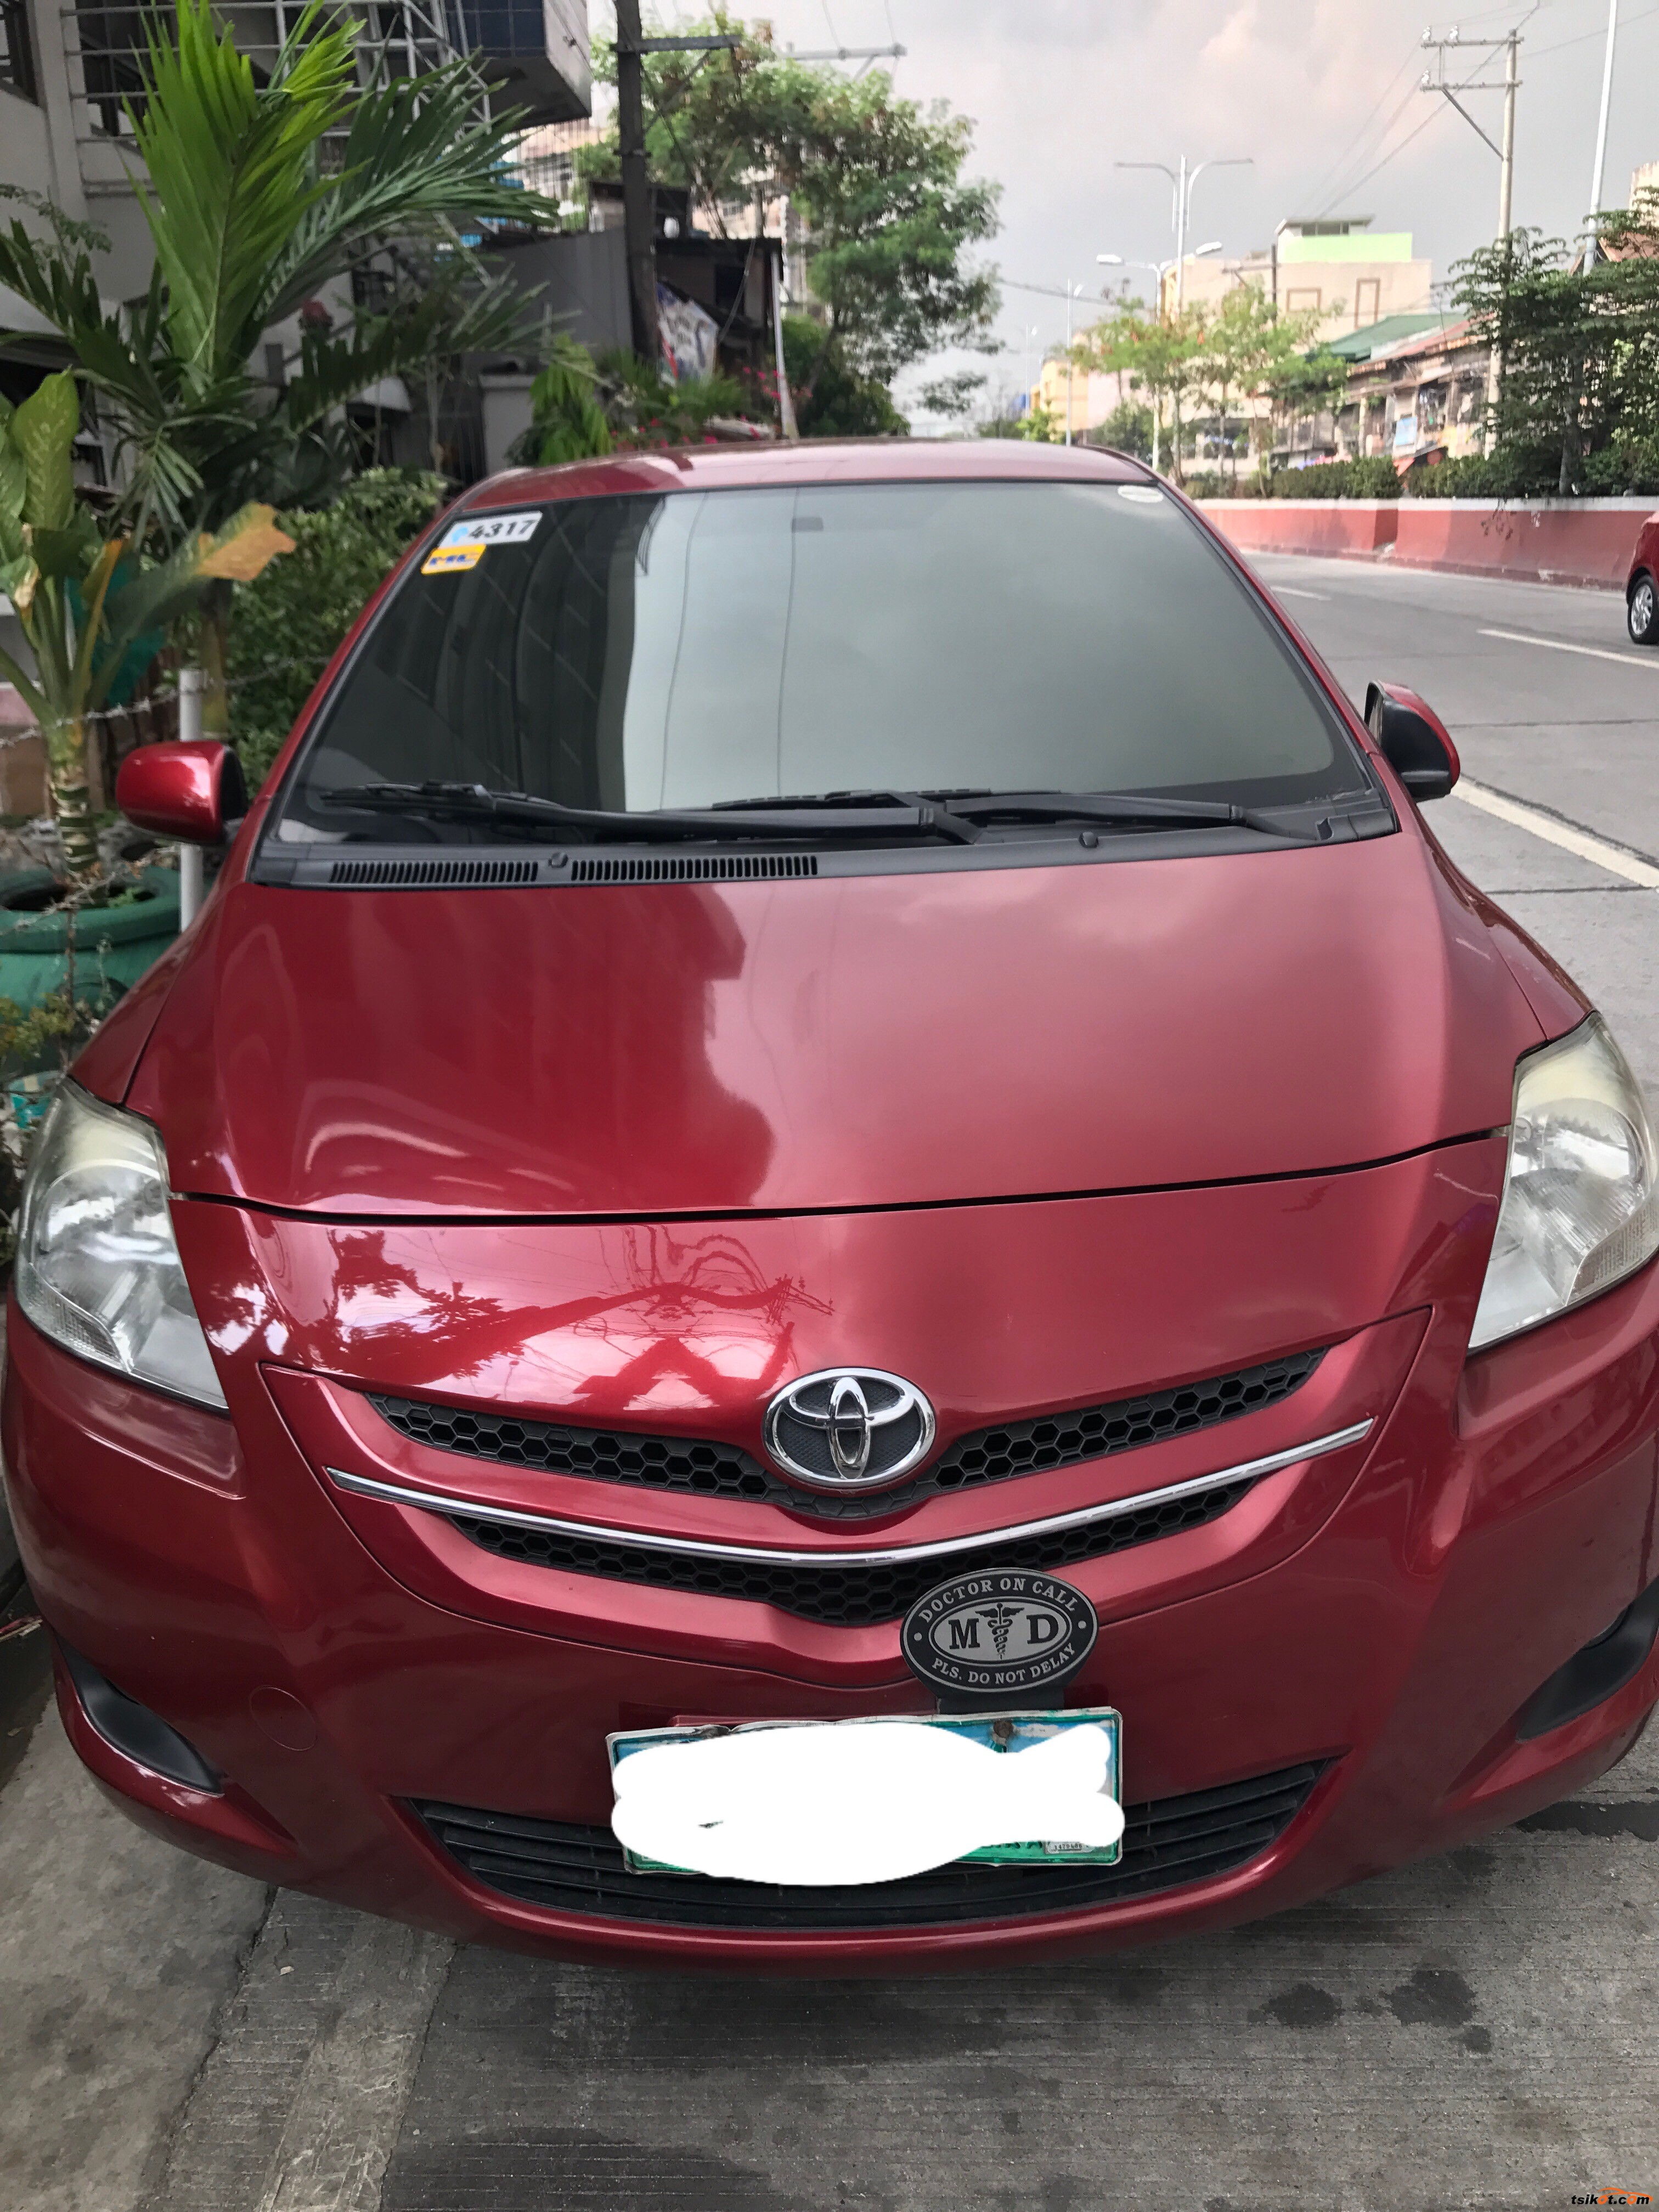 Toyota Vios 2008 Car For Sale Metro Manila